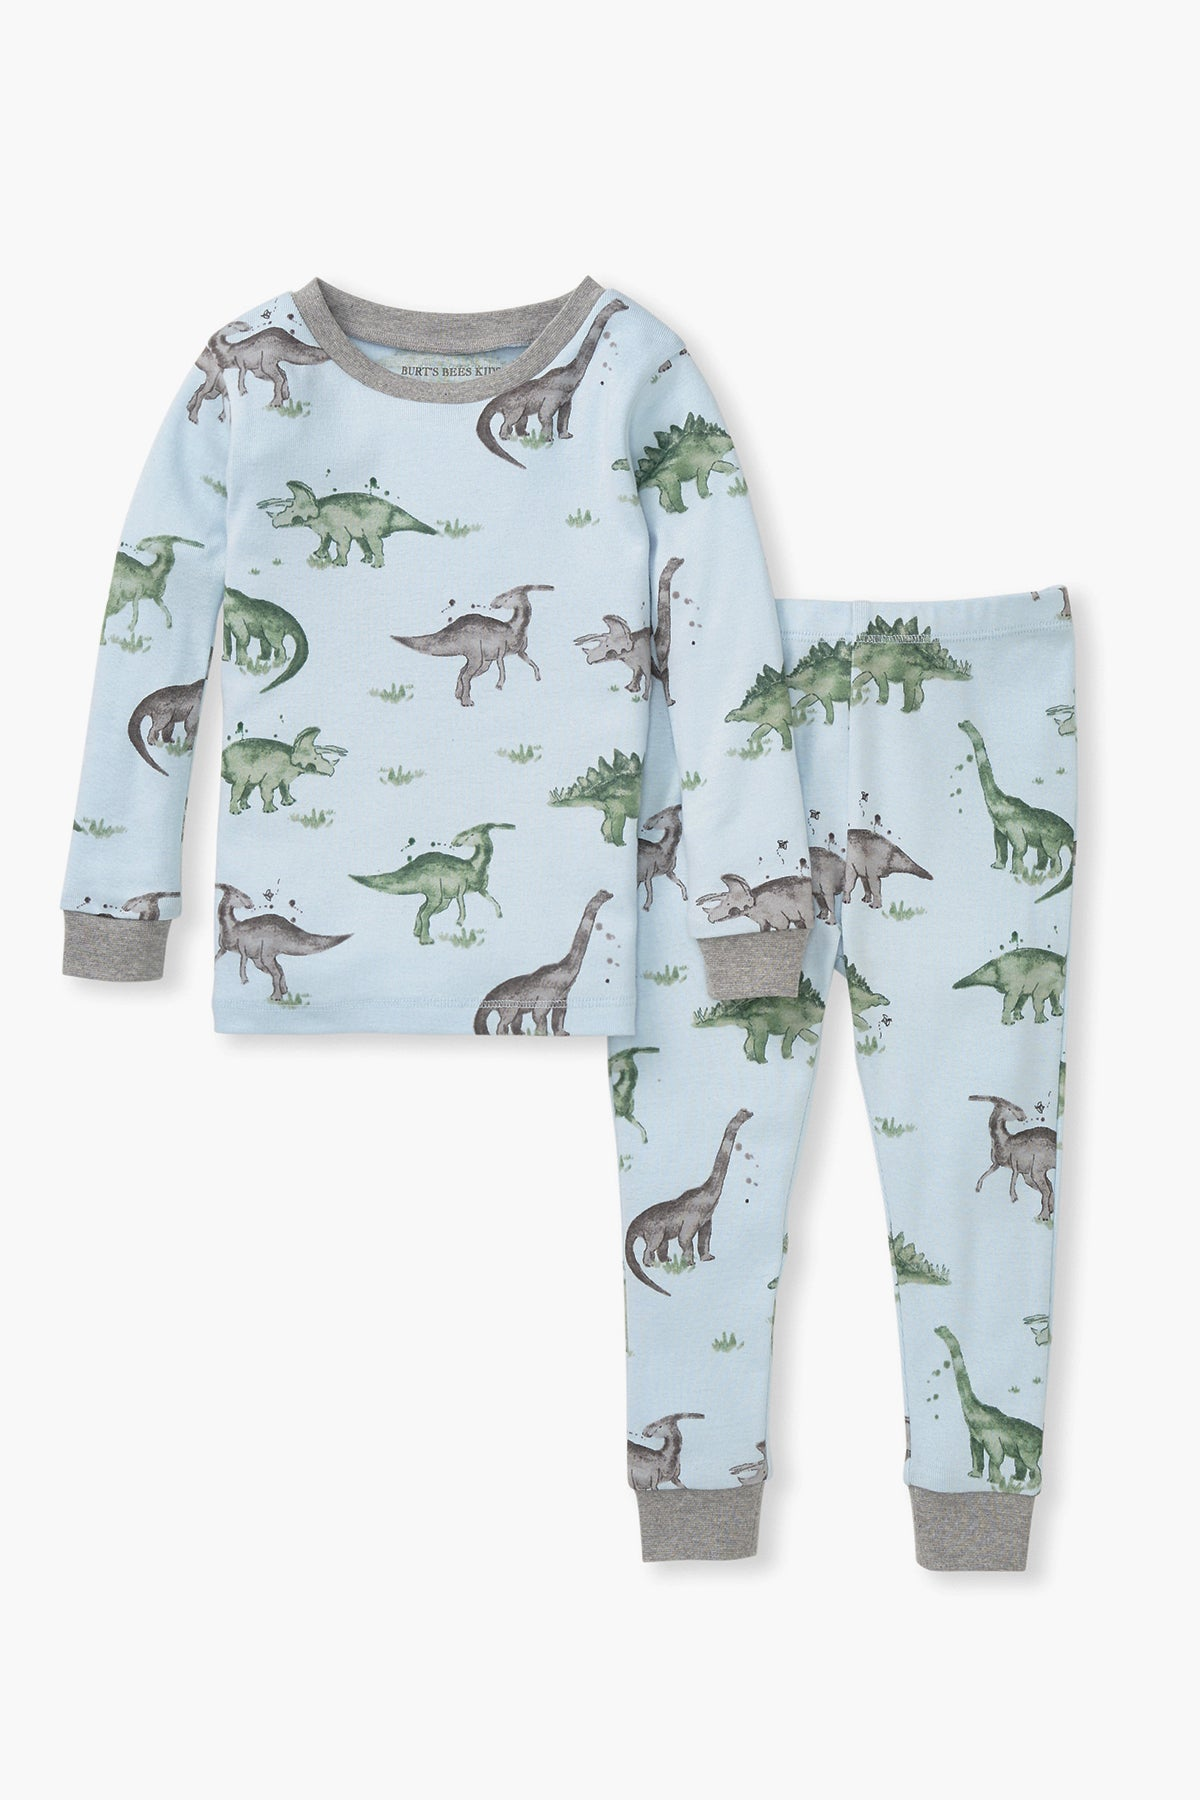 Burt's Bees Happy Herbivores Boys Pajama Set